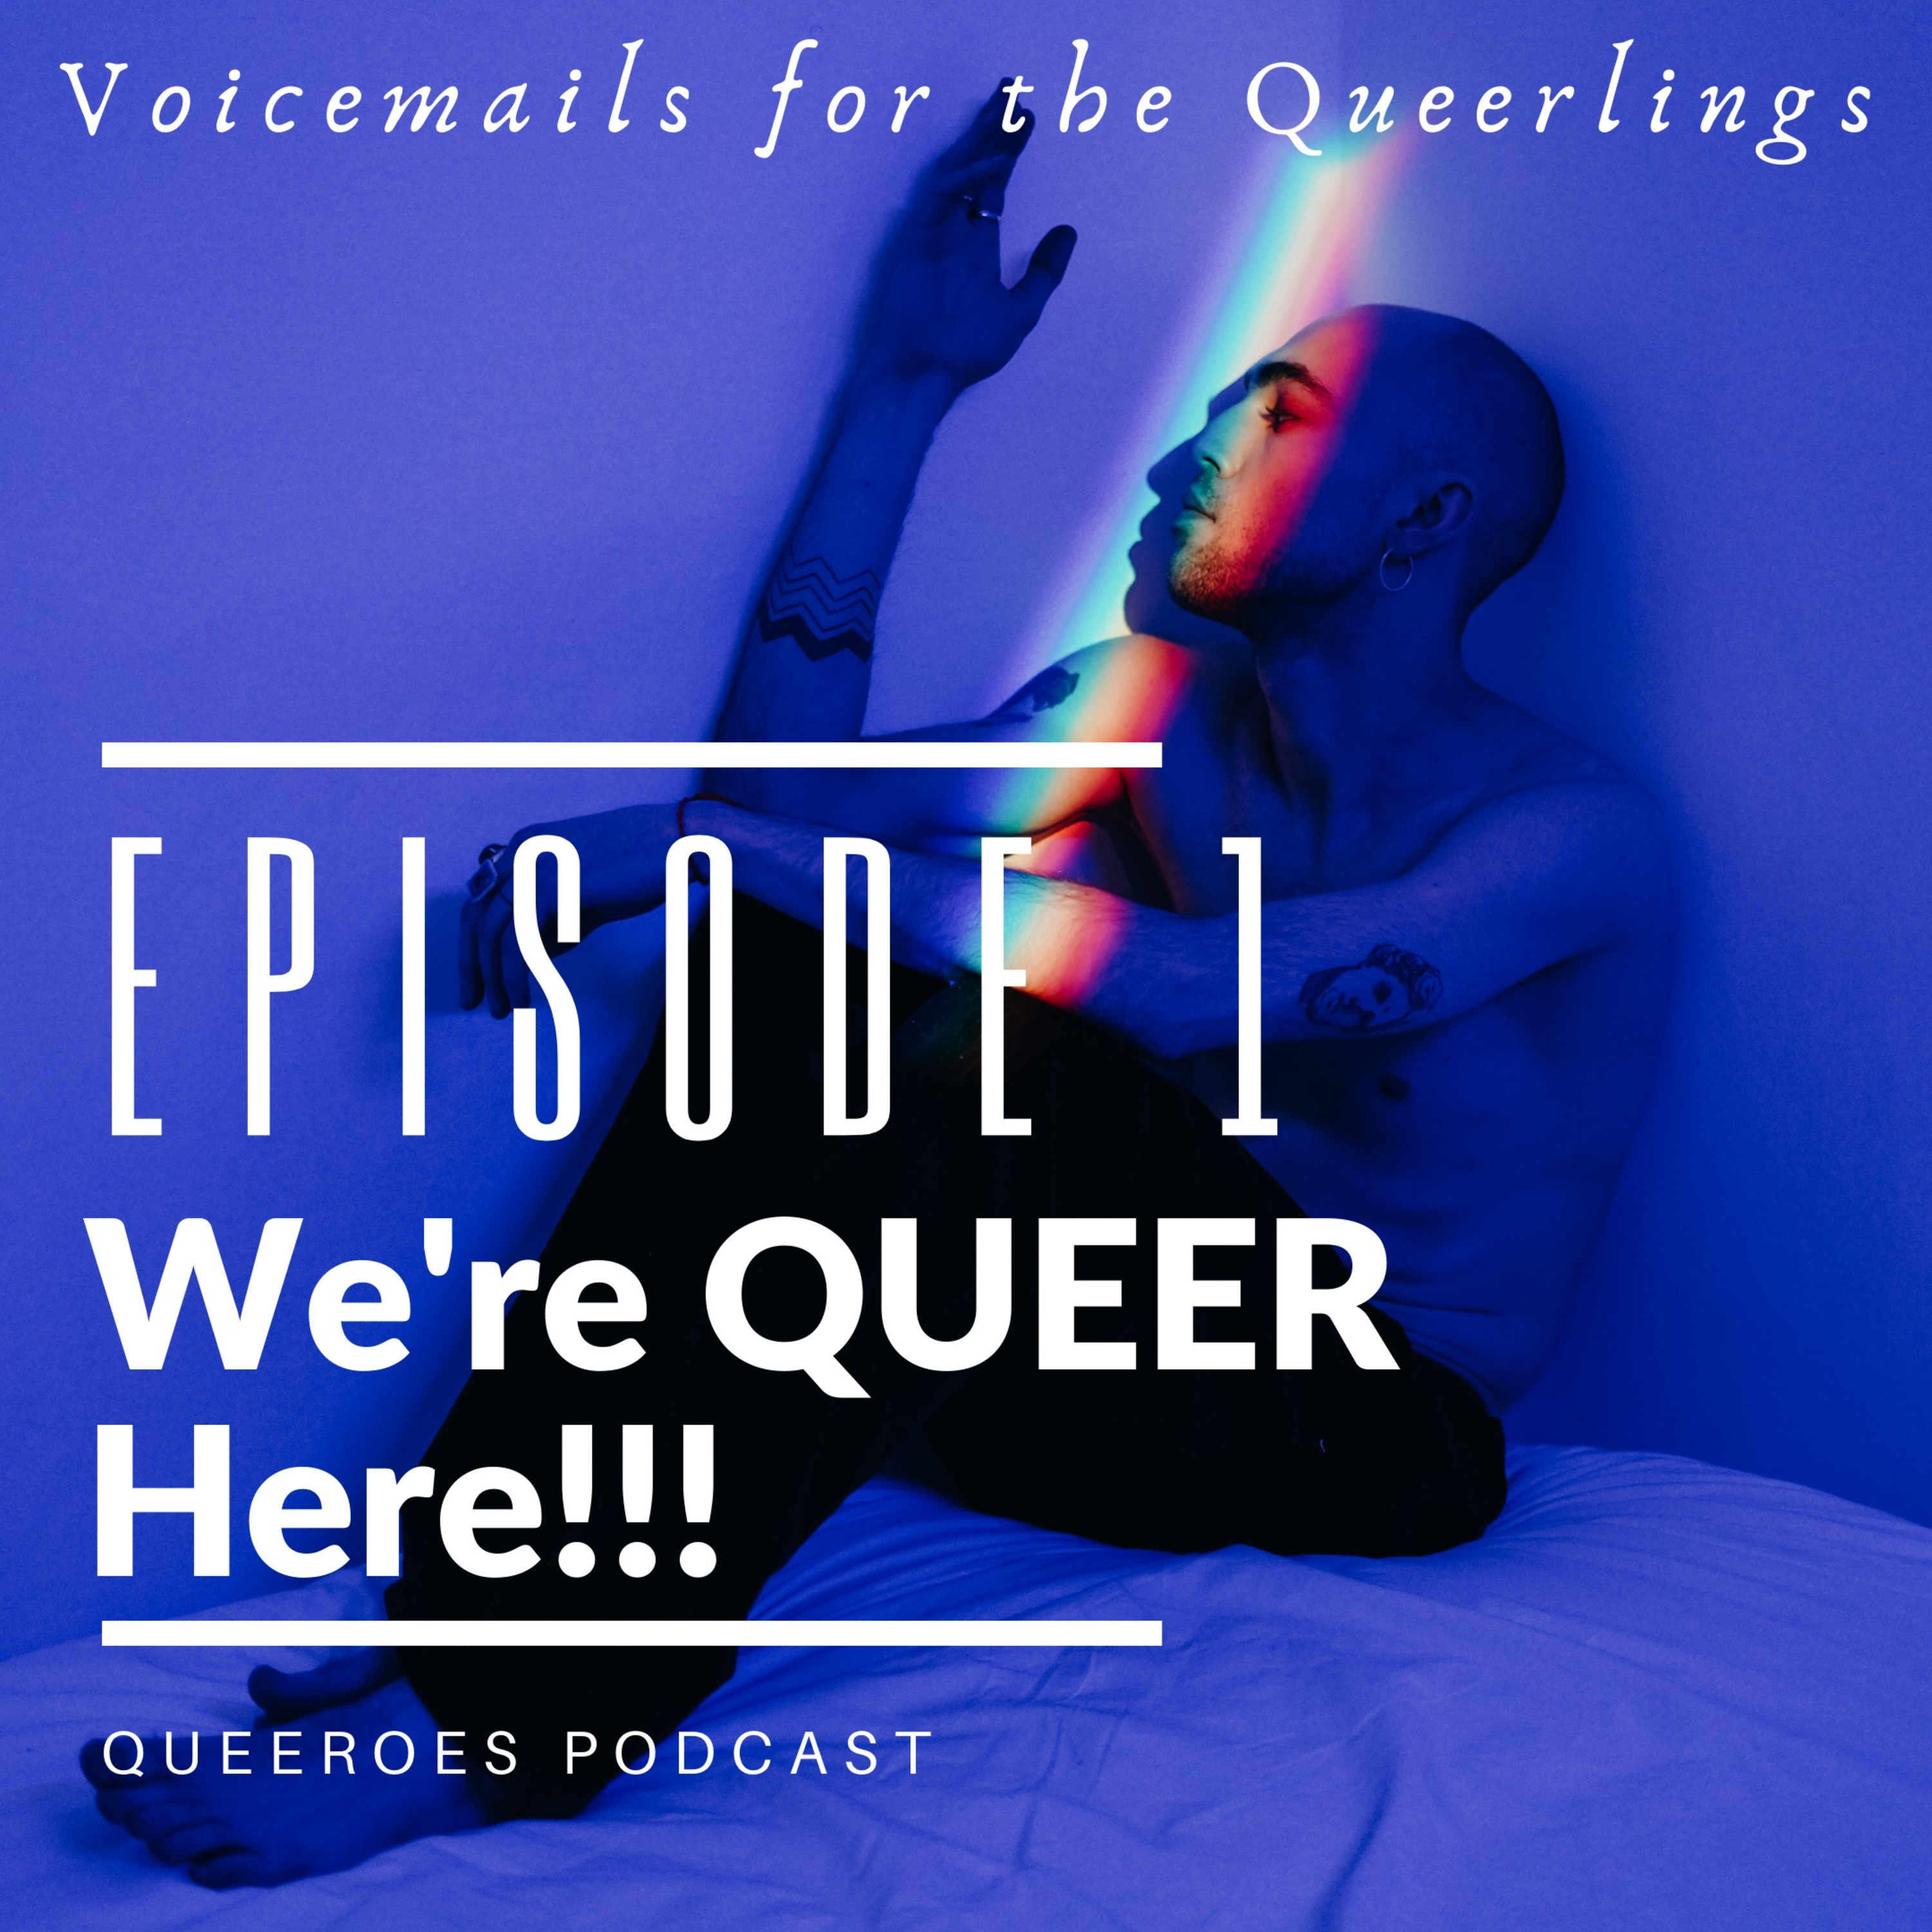 Queeroes Podcast on Jamit